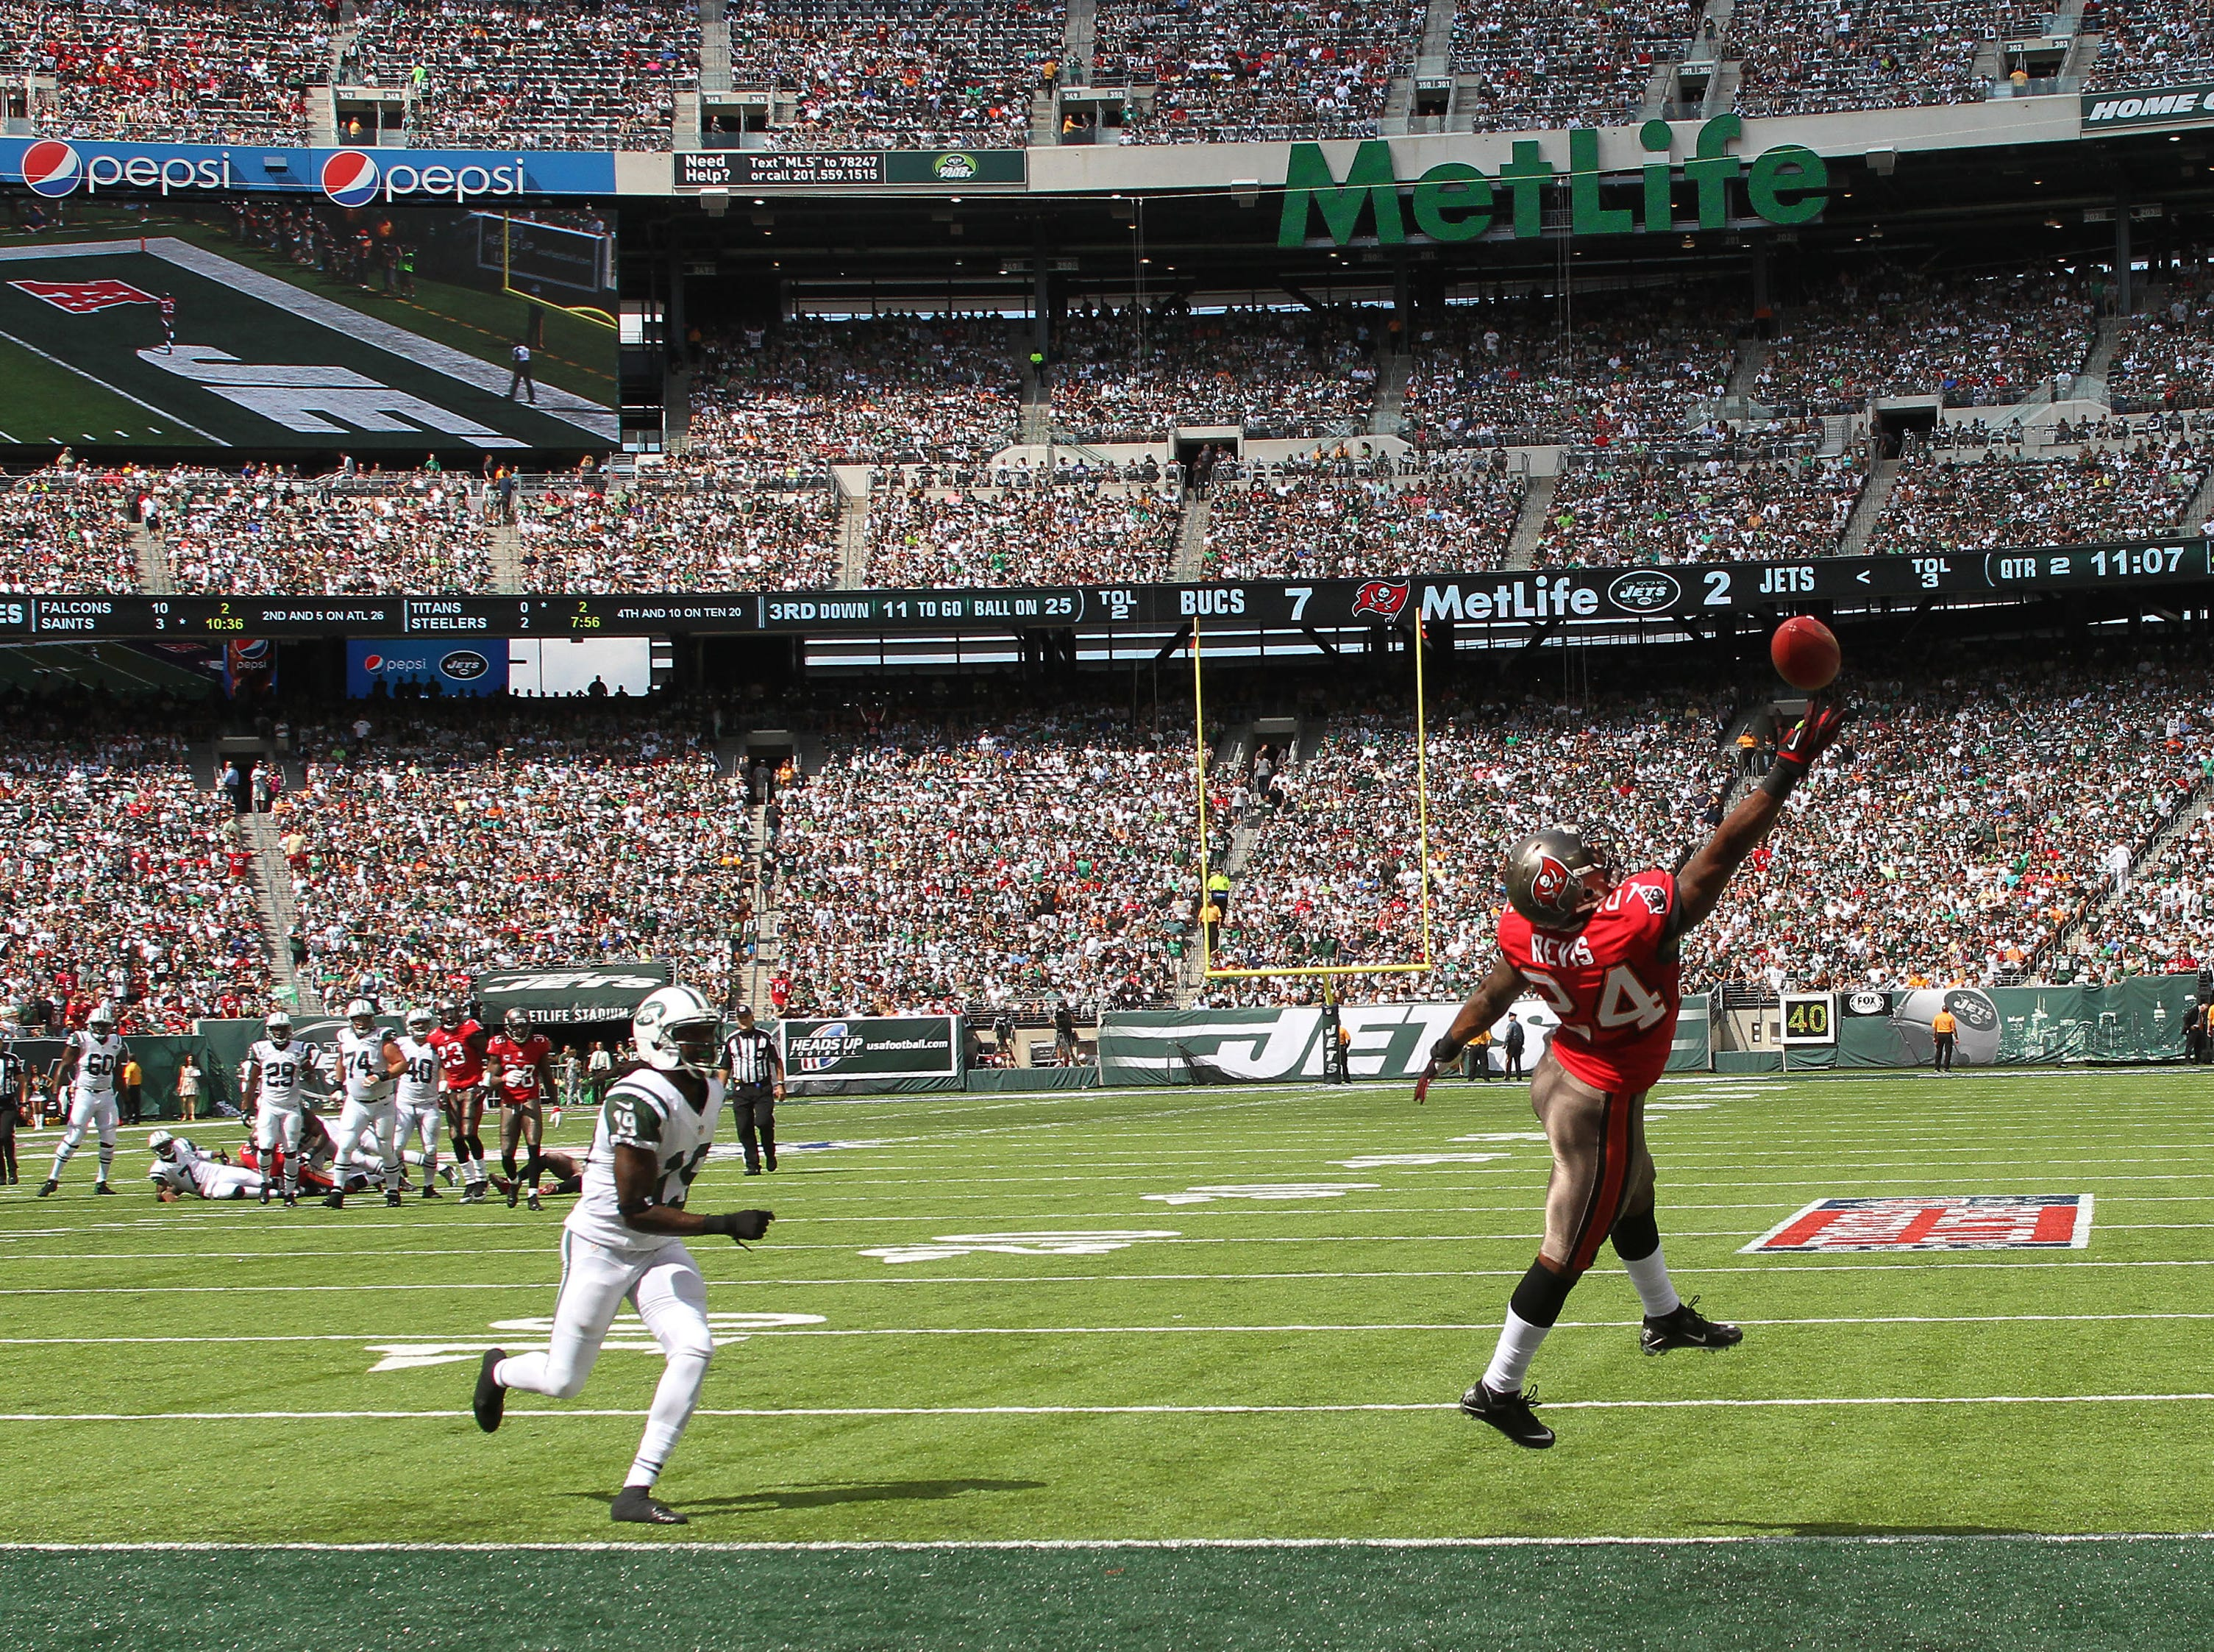 Tampa Bay cornerback Darrelle Revis reaches up to attempt an interception vs. the New York Jets at MetLife Stadium.